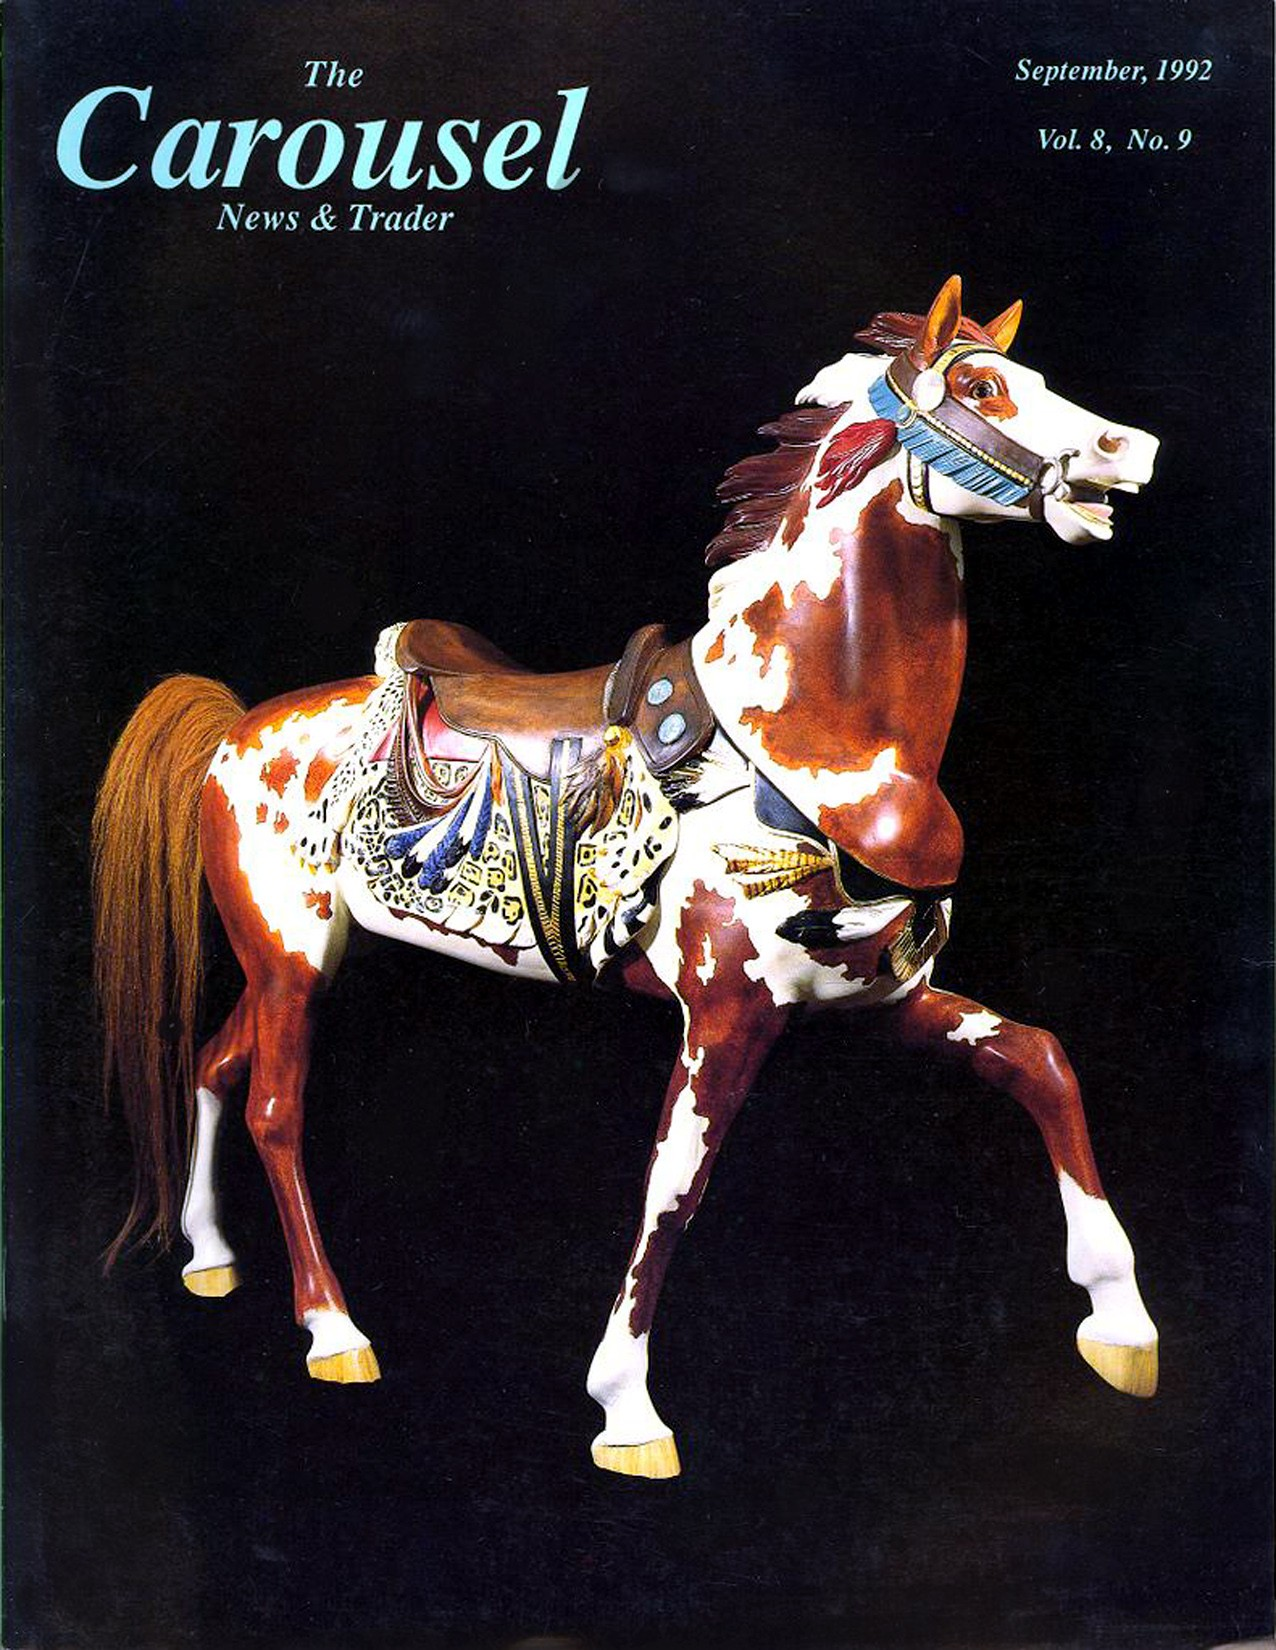 Issue No. 9, Vol. 8 – September 1992